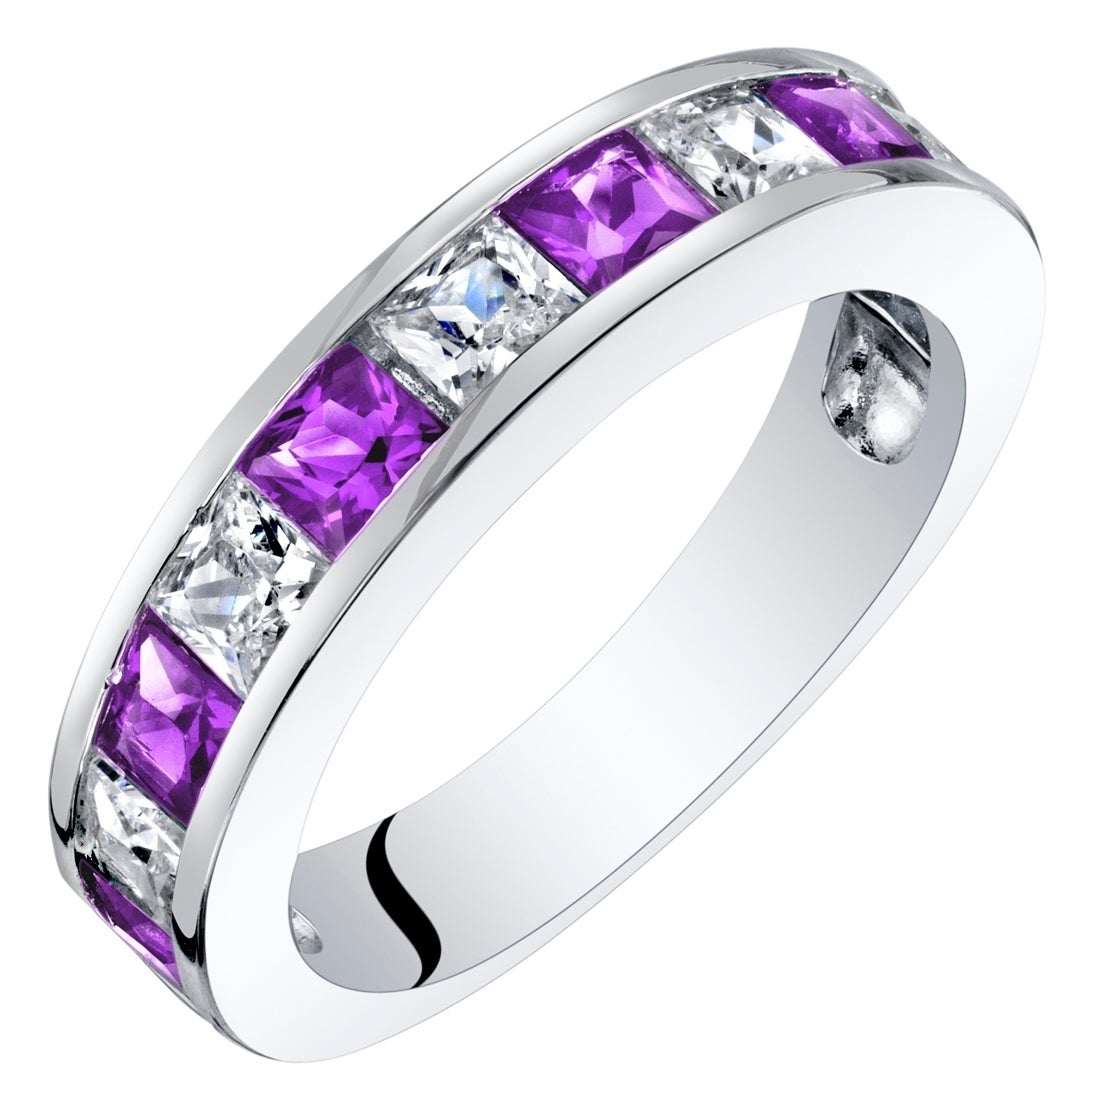 22 Ct Natural Amethyst Eternity Ring Made of Sterling Silver